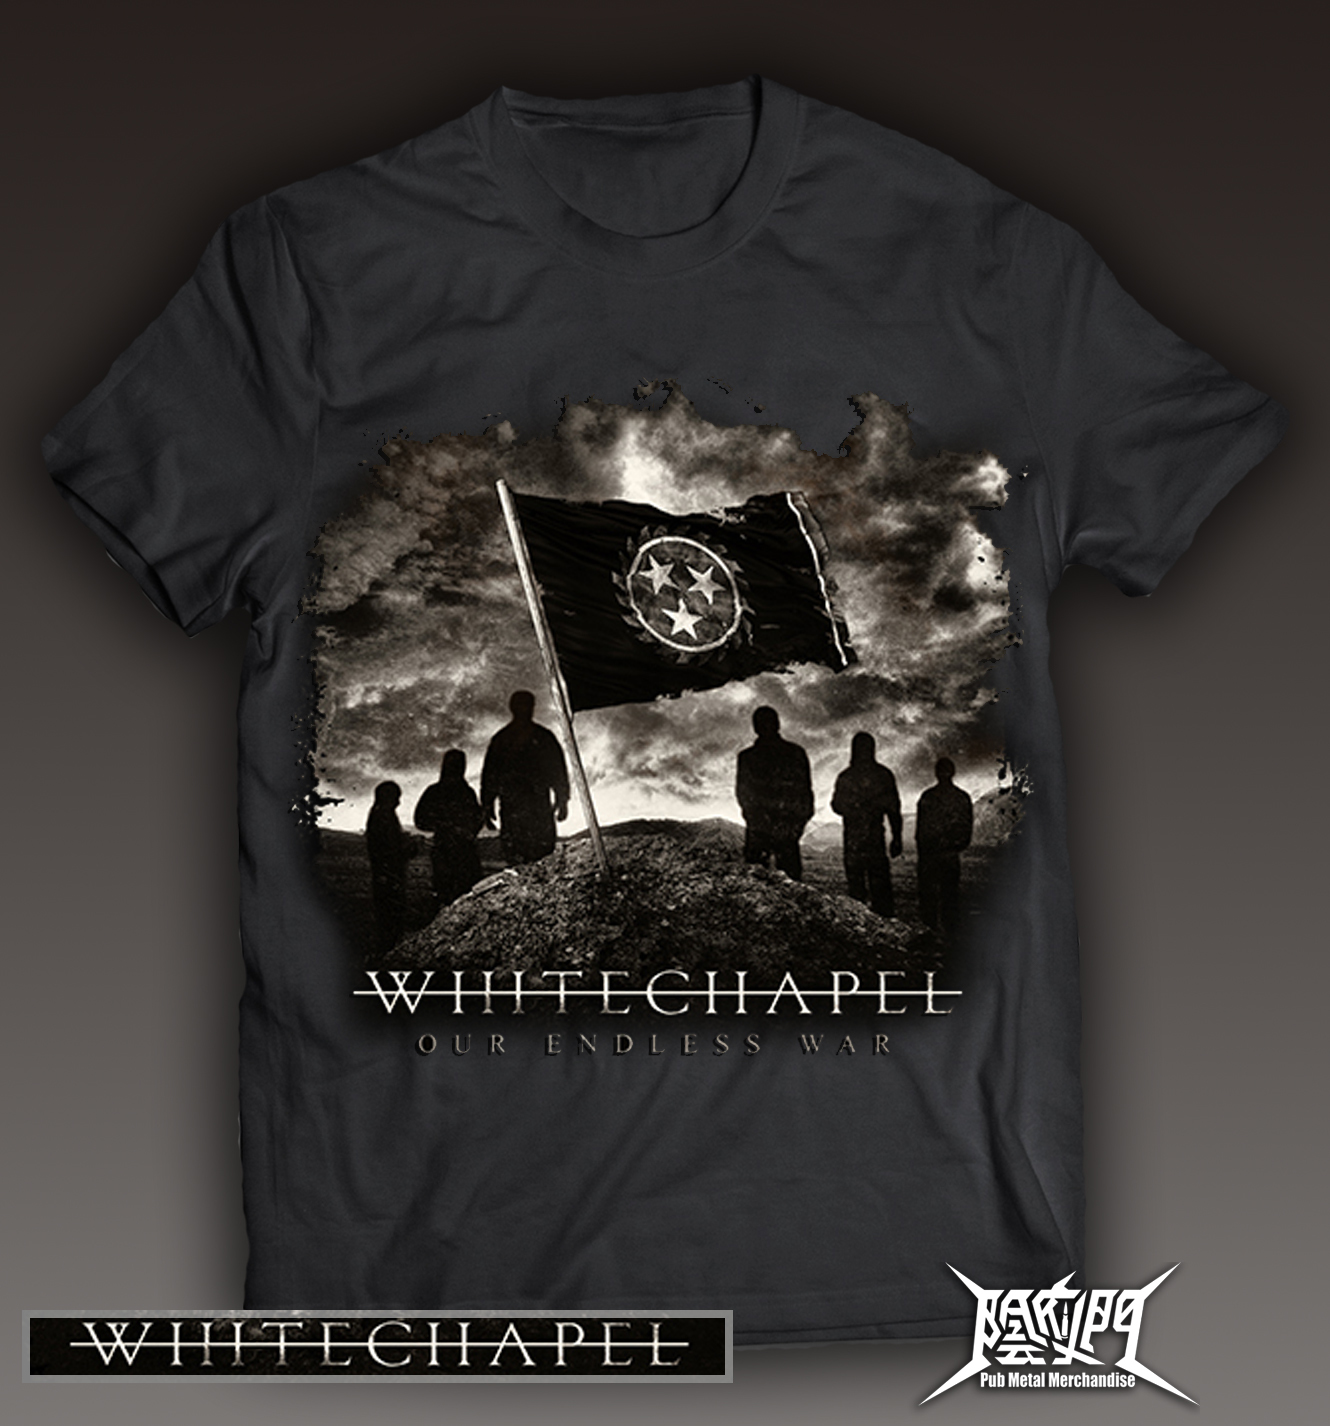 Whitechapel-our endless war.jpg